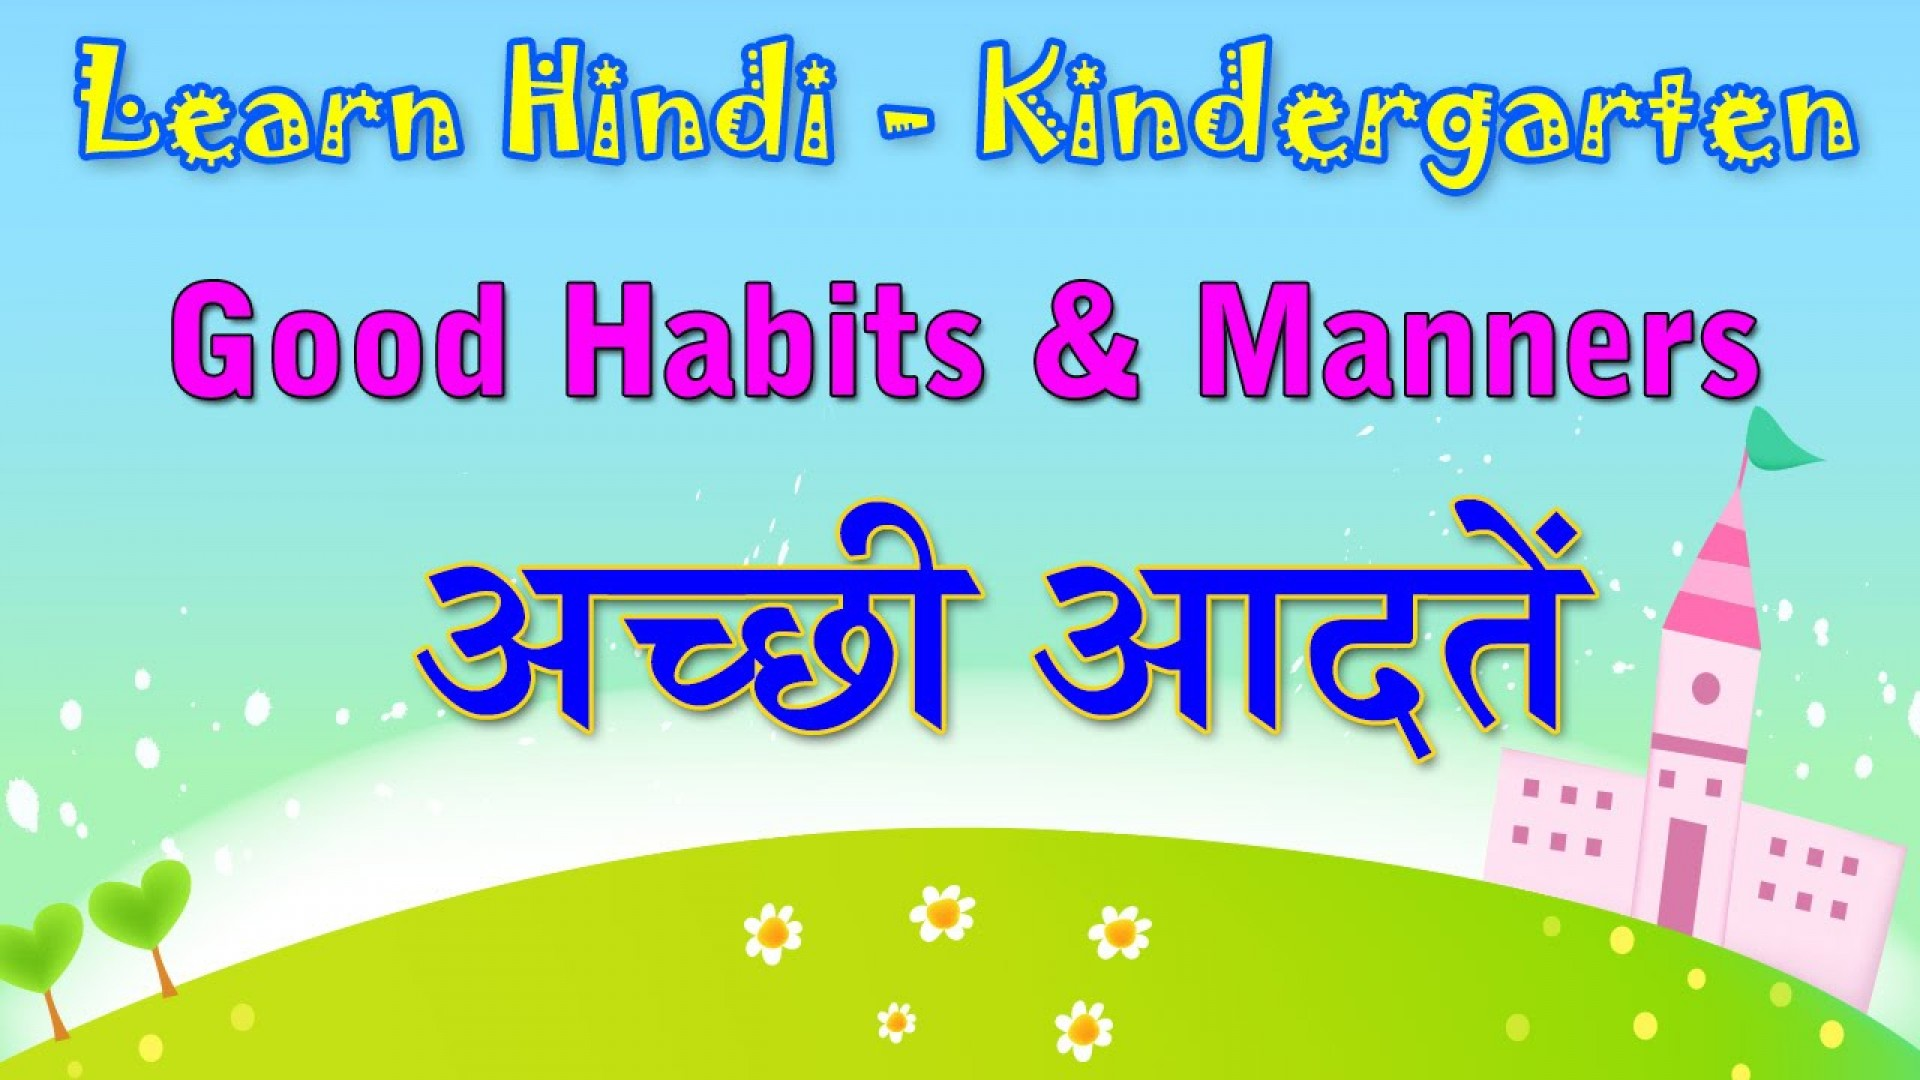 004 Essay Example Good Habits In Hindi Exceptional Habit Eating And Bad 1920